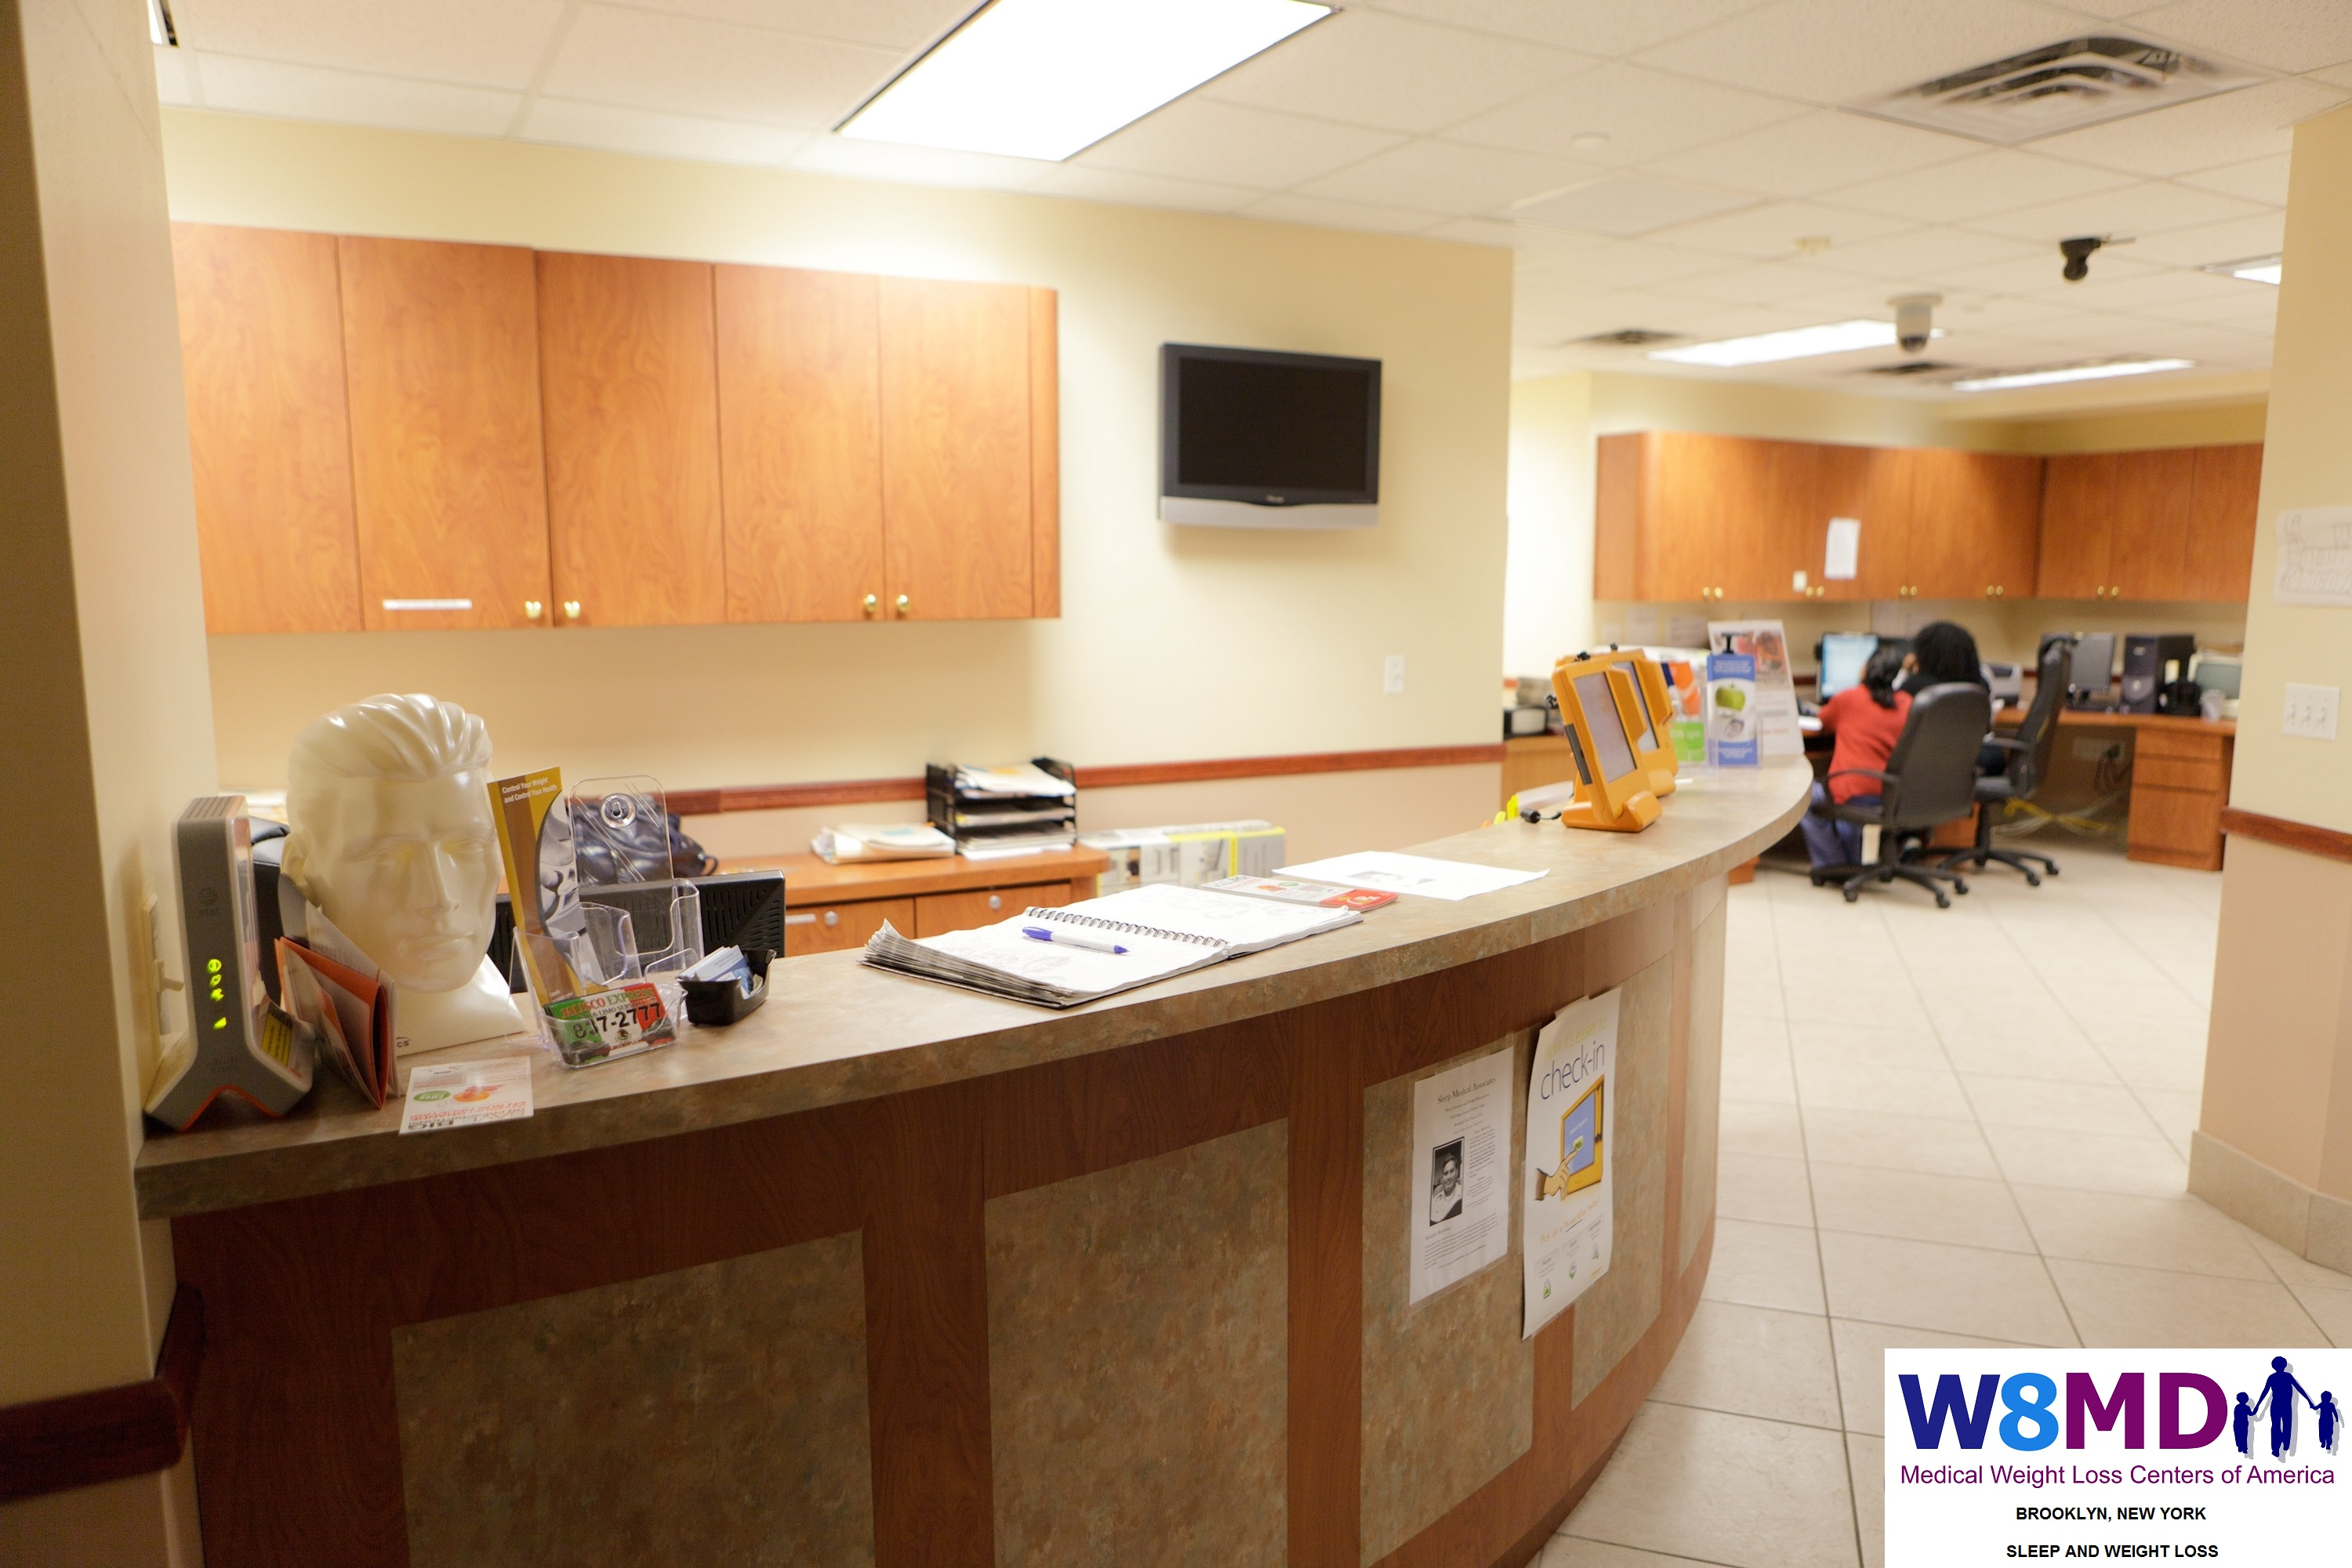 Weight Loss Center Locations W8md